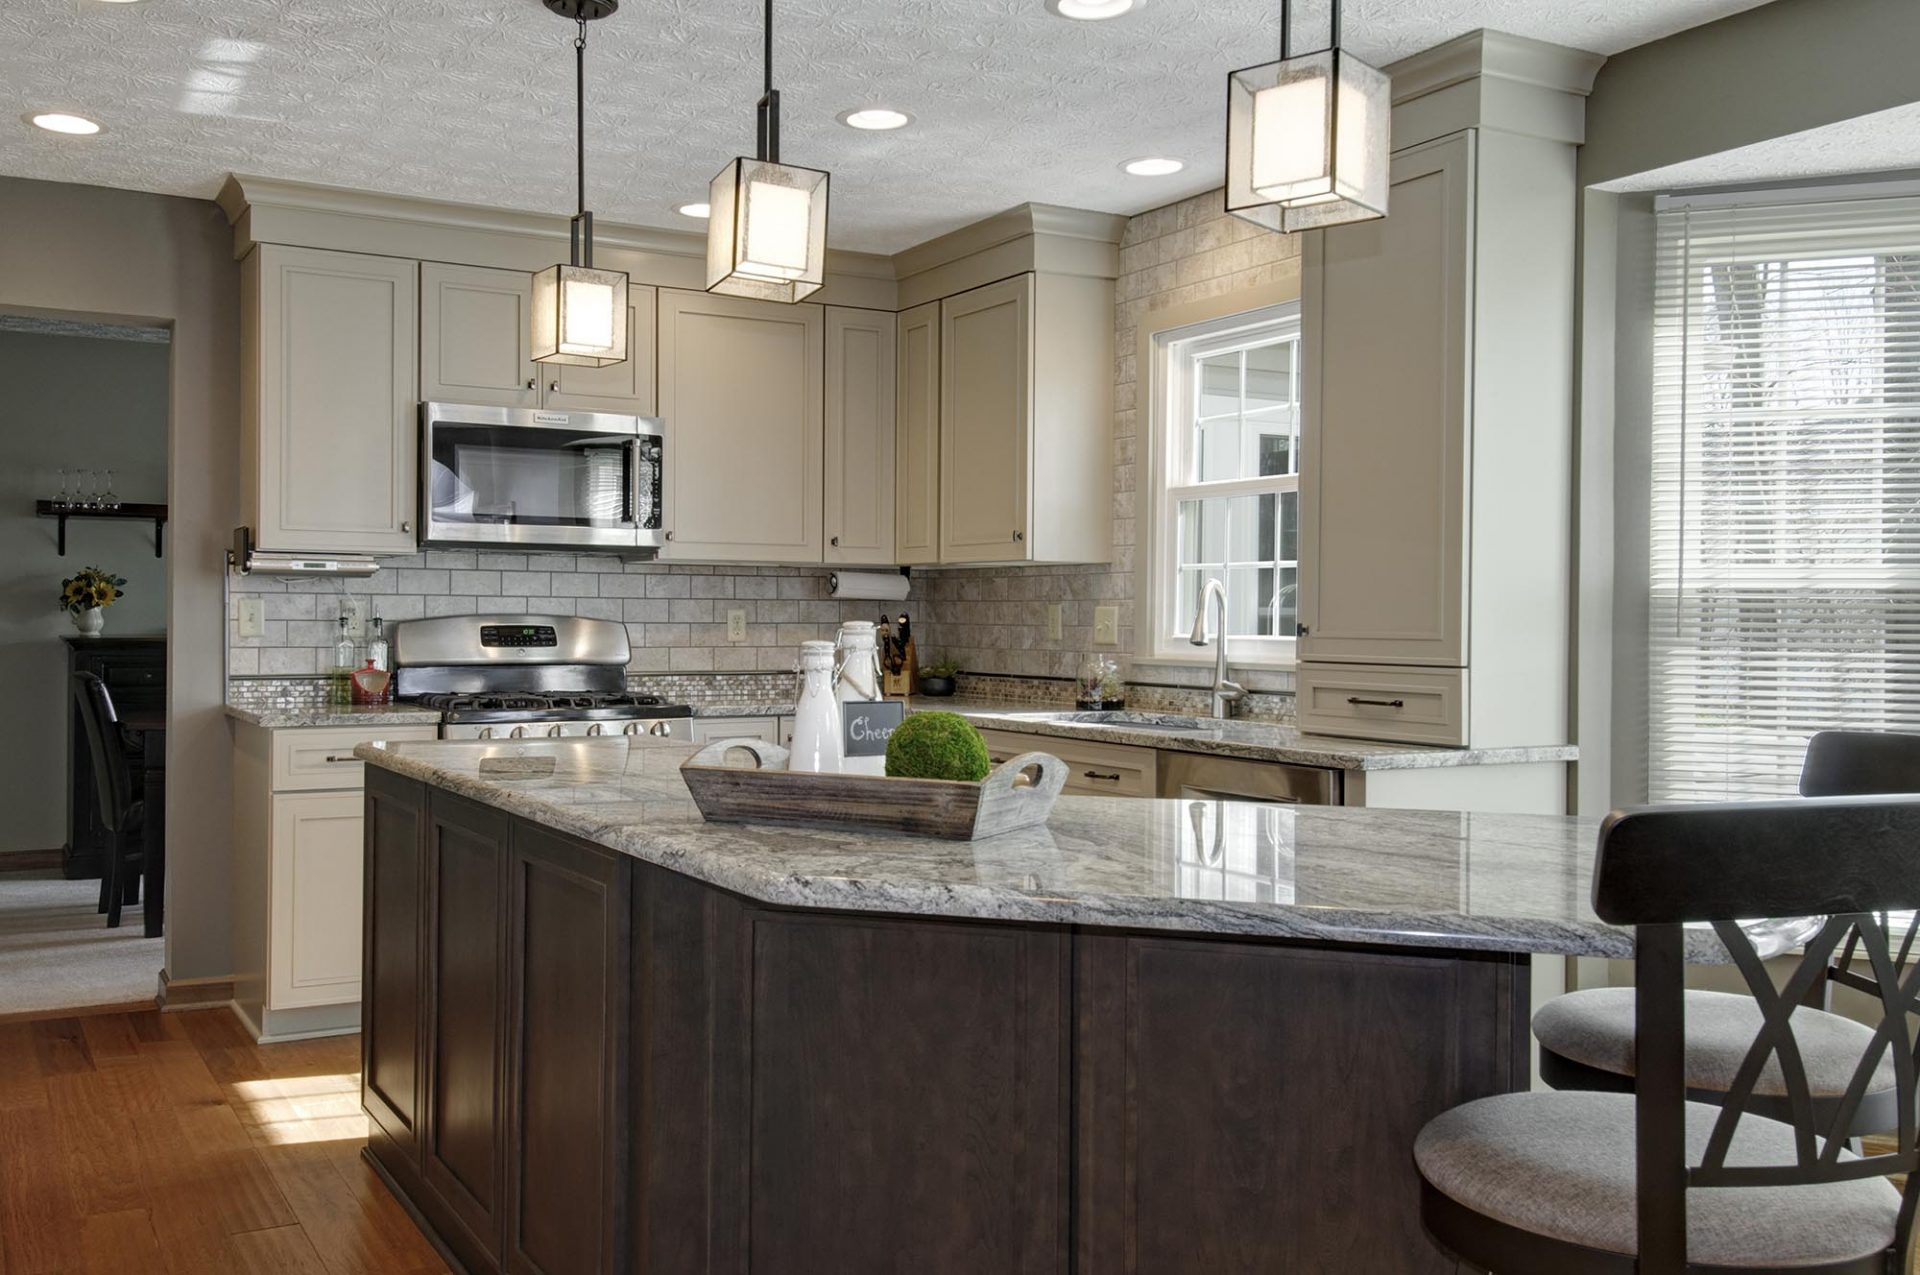 Kitchen, Gahanna, Dave Fox, Remodel, tile, island, granite, pendent lighting, brown tan cabinets